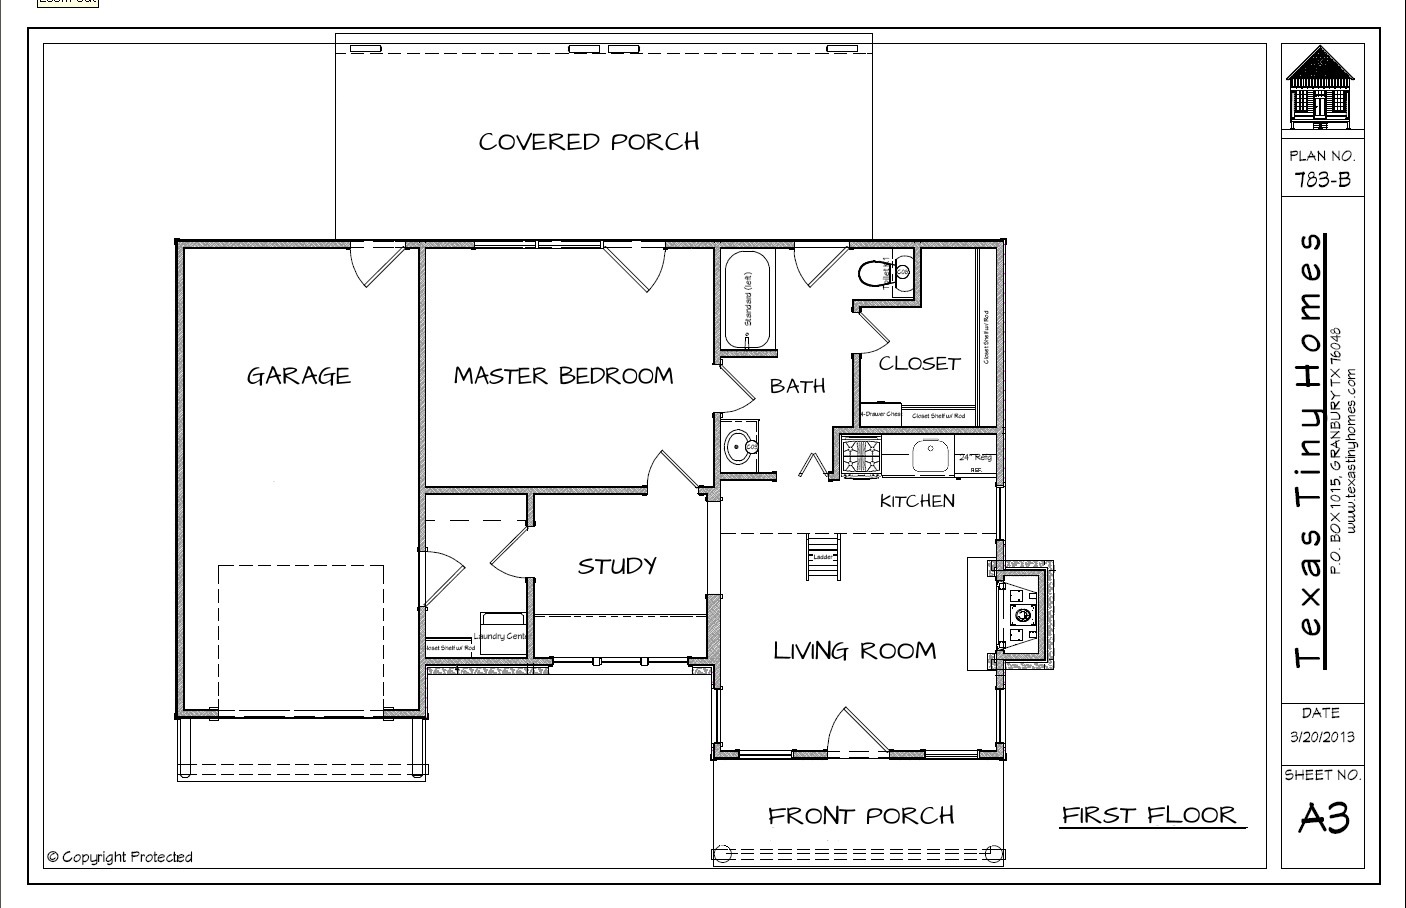 Plan 783 texas tiny homes for Tiny home designs plans